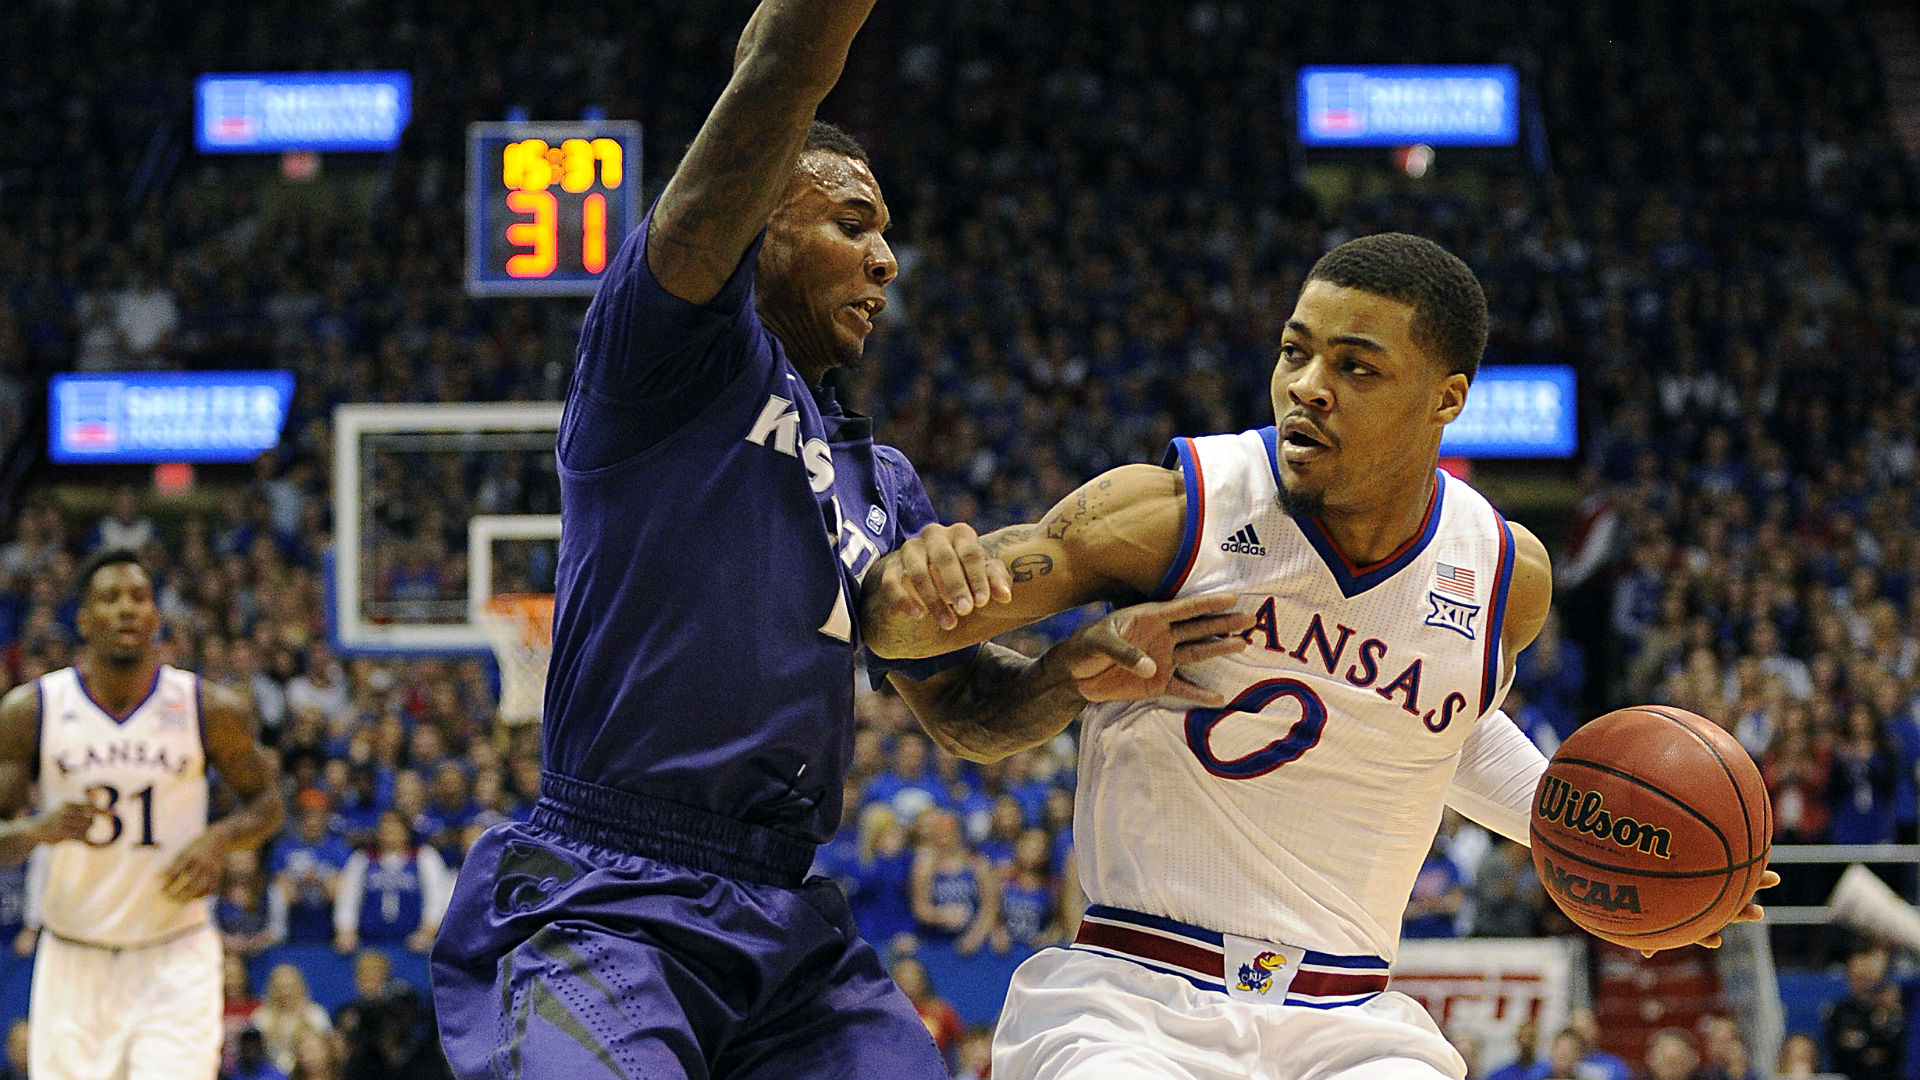 College basketball betting lines and picks – Rivals Kansas, Kansas State battle on Monday